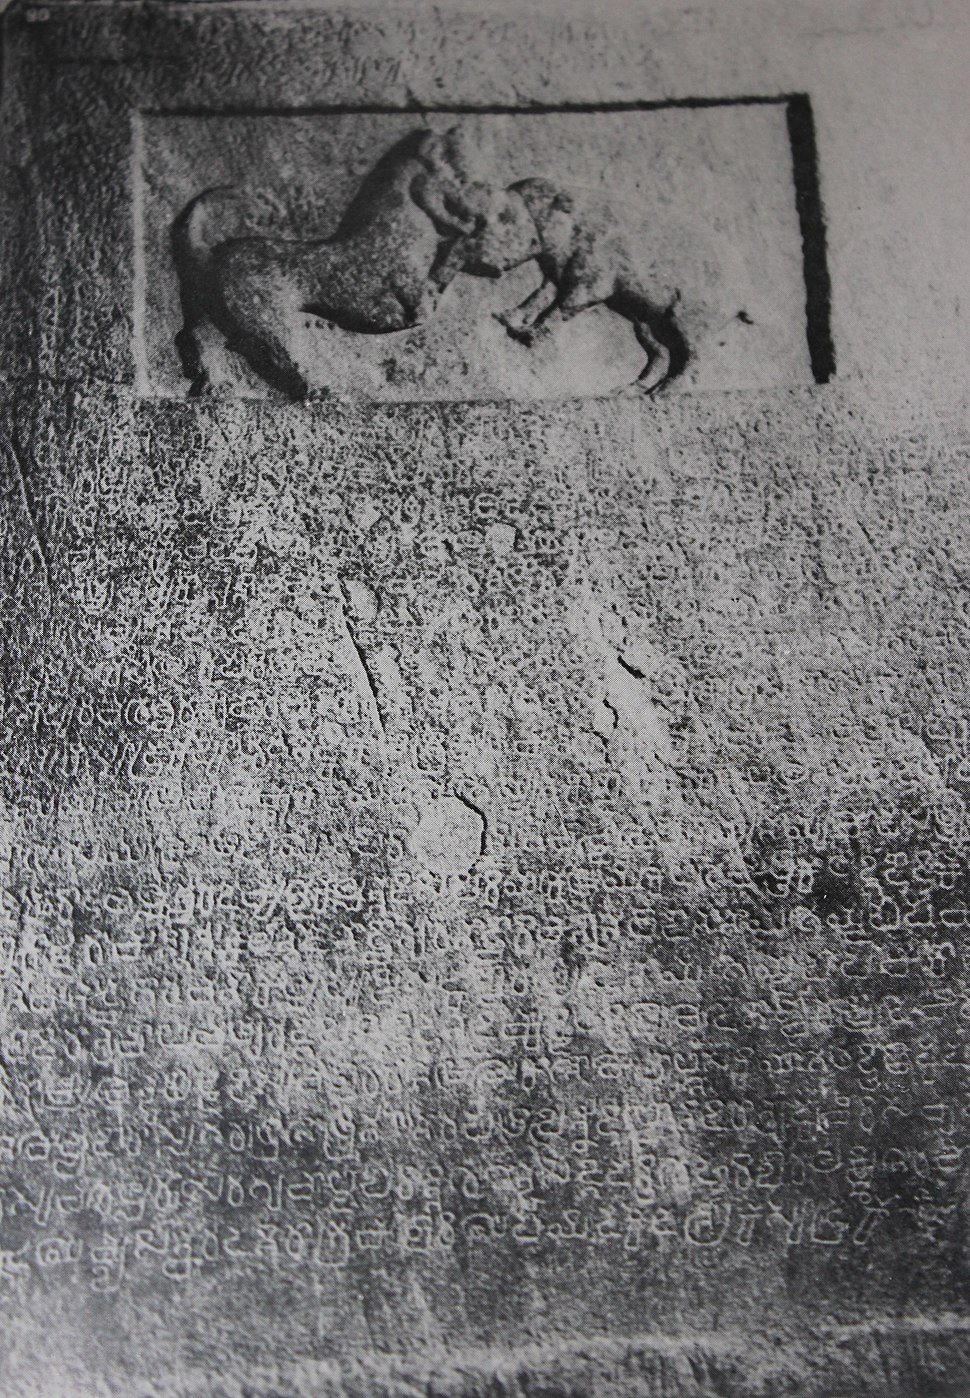 Atakur memorial stone with inscription in old Kannada (949 C.E.)